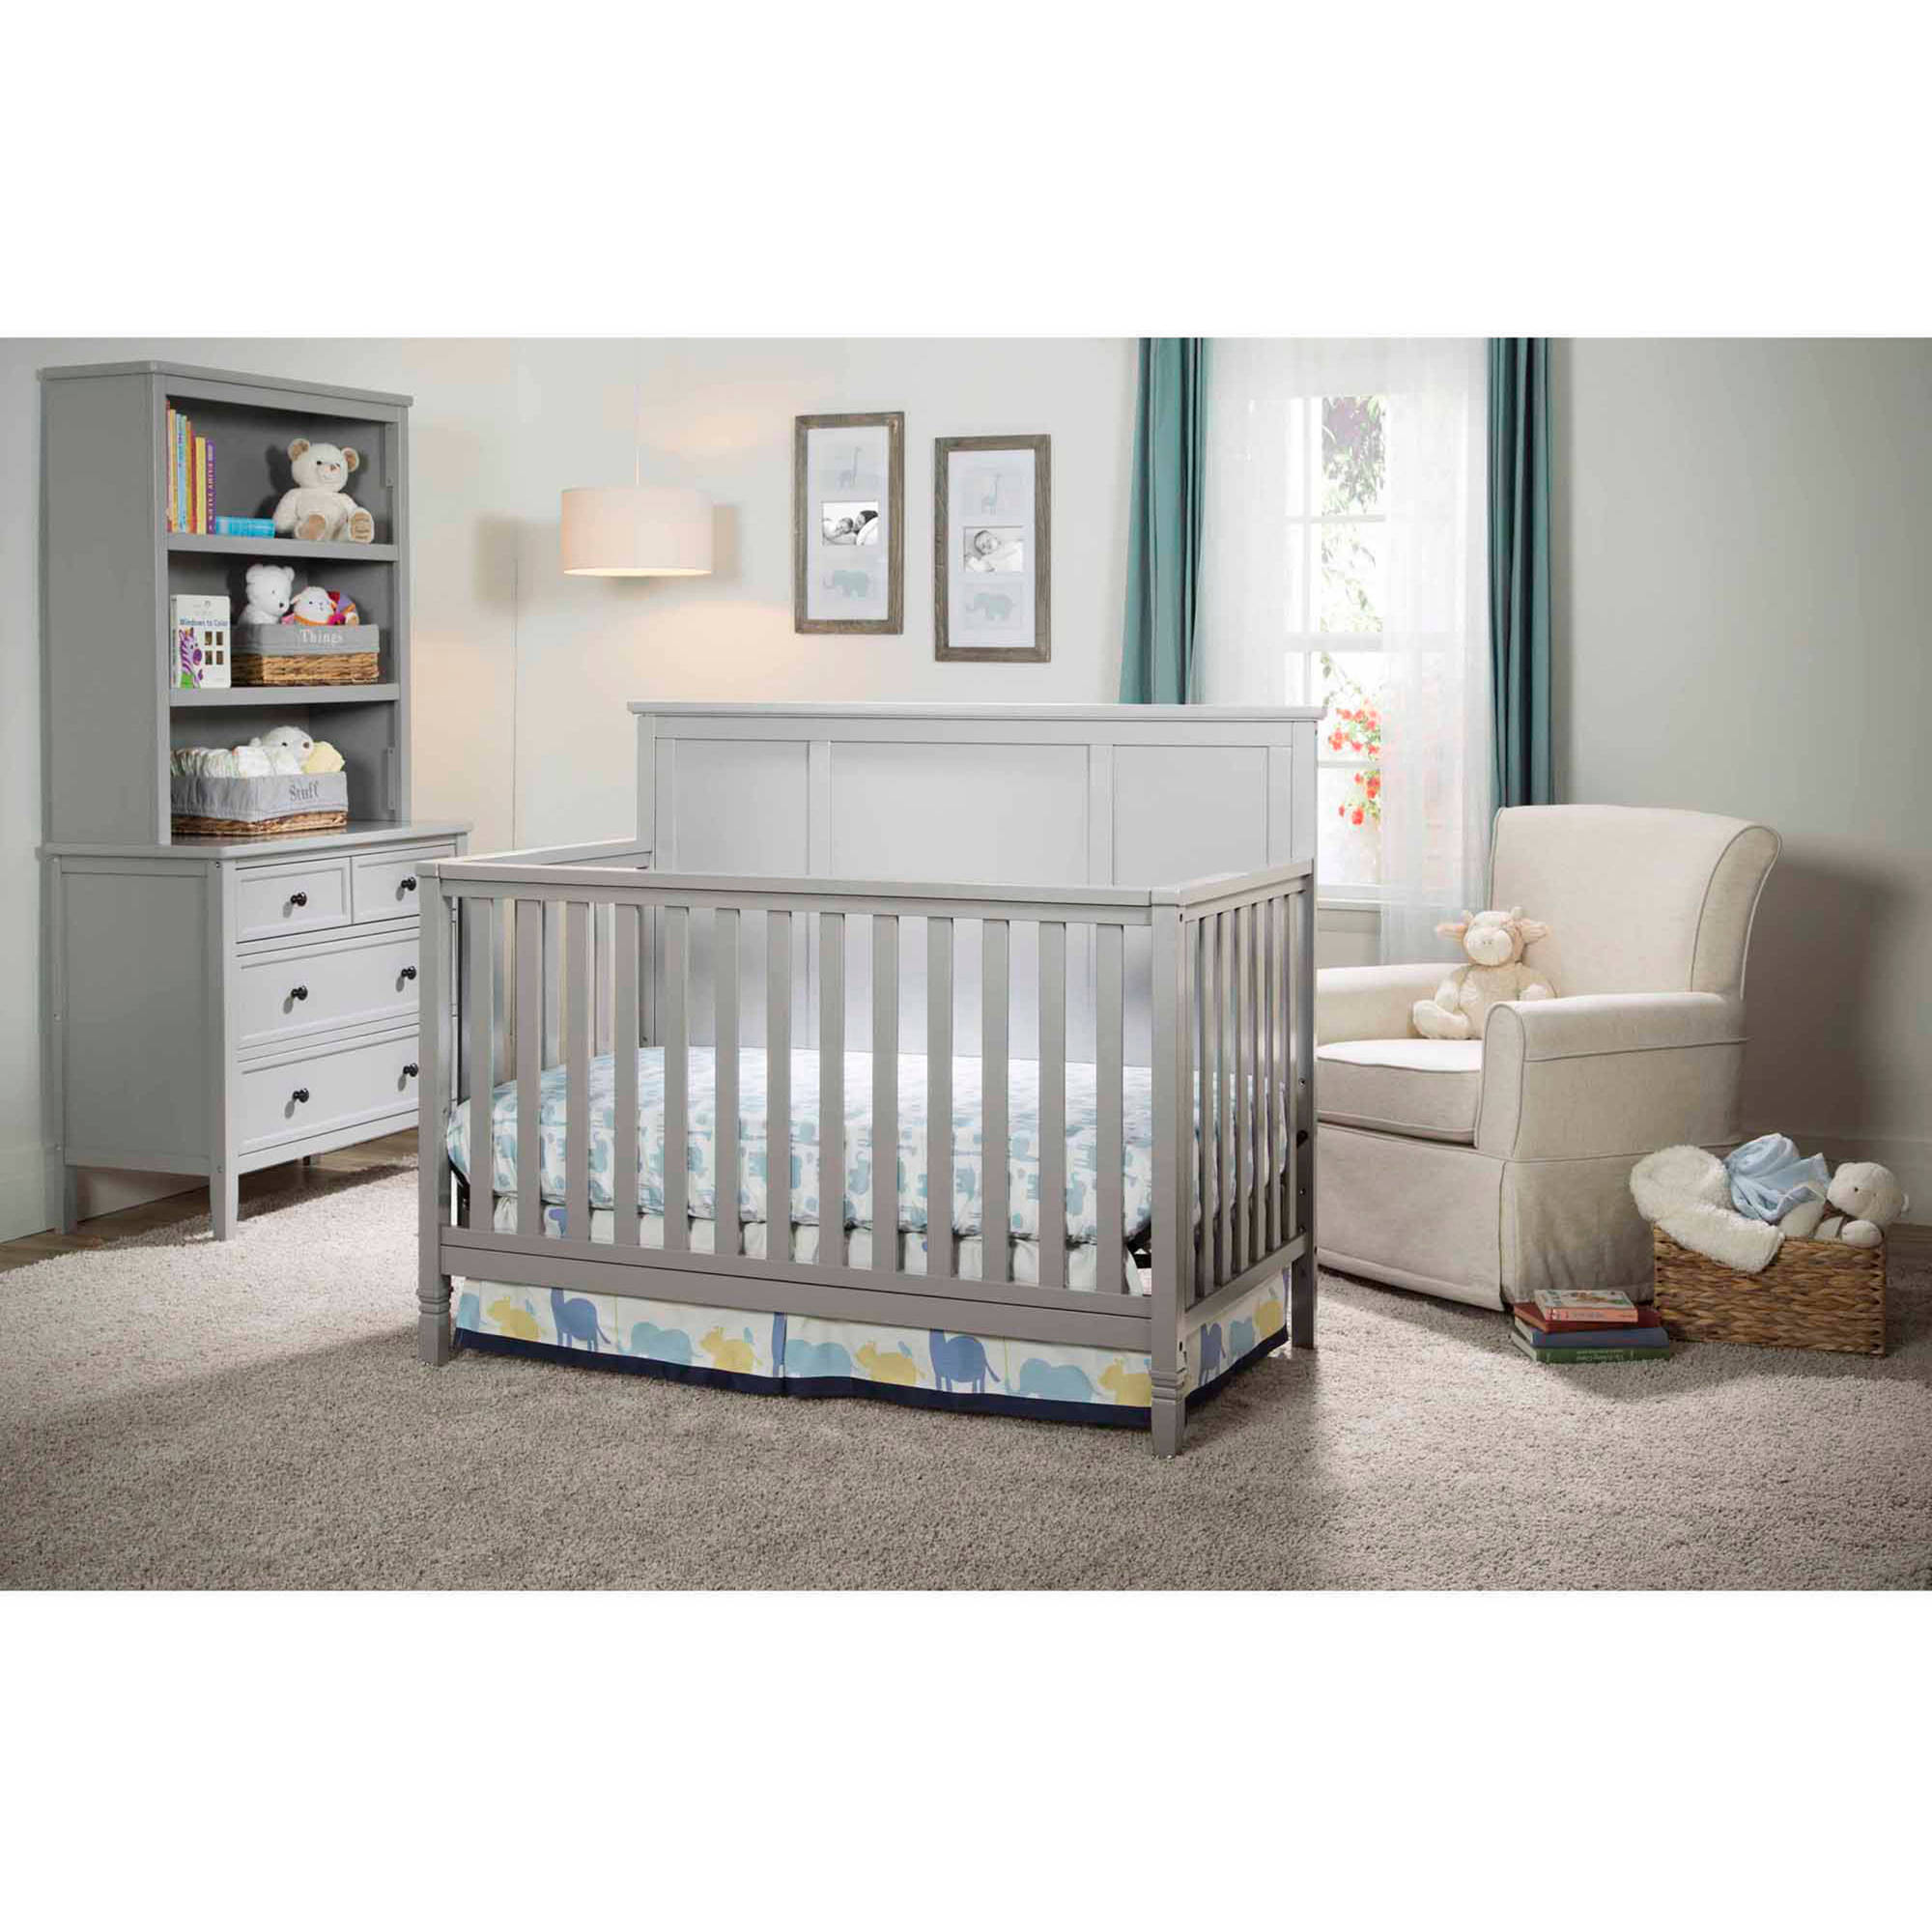 Baby cribs with matching dresser - Baby Cribs With Matching Dresser 12